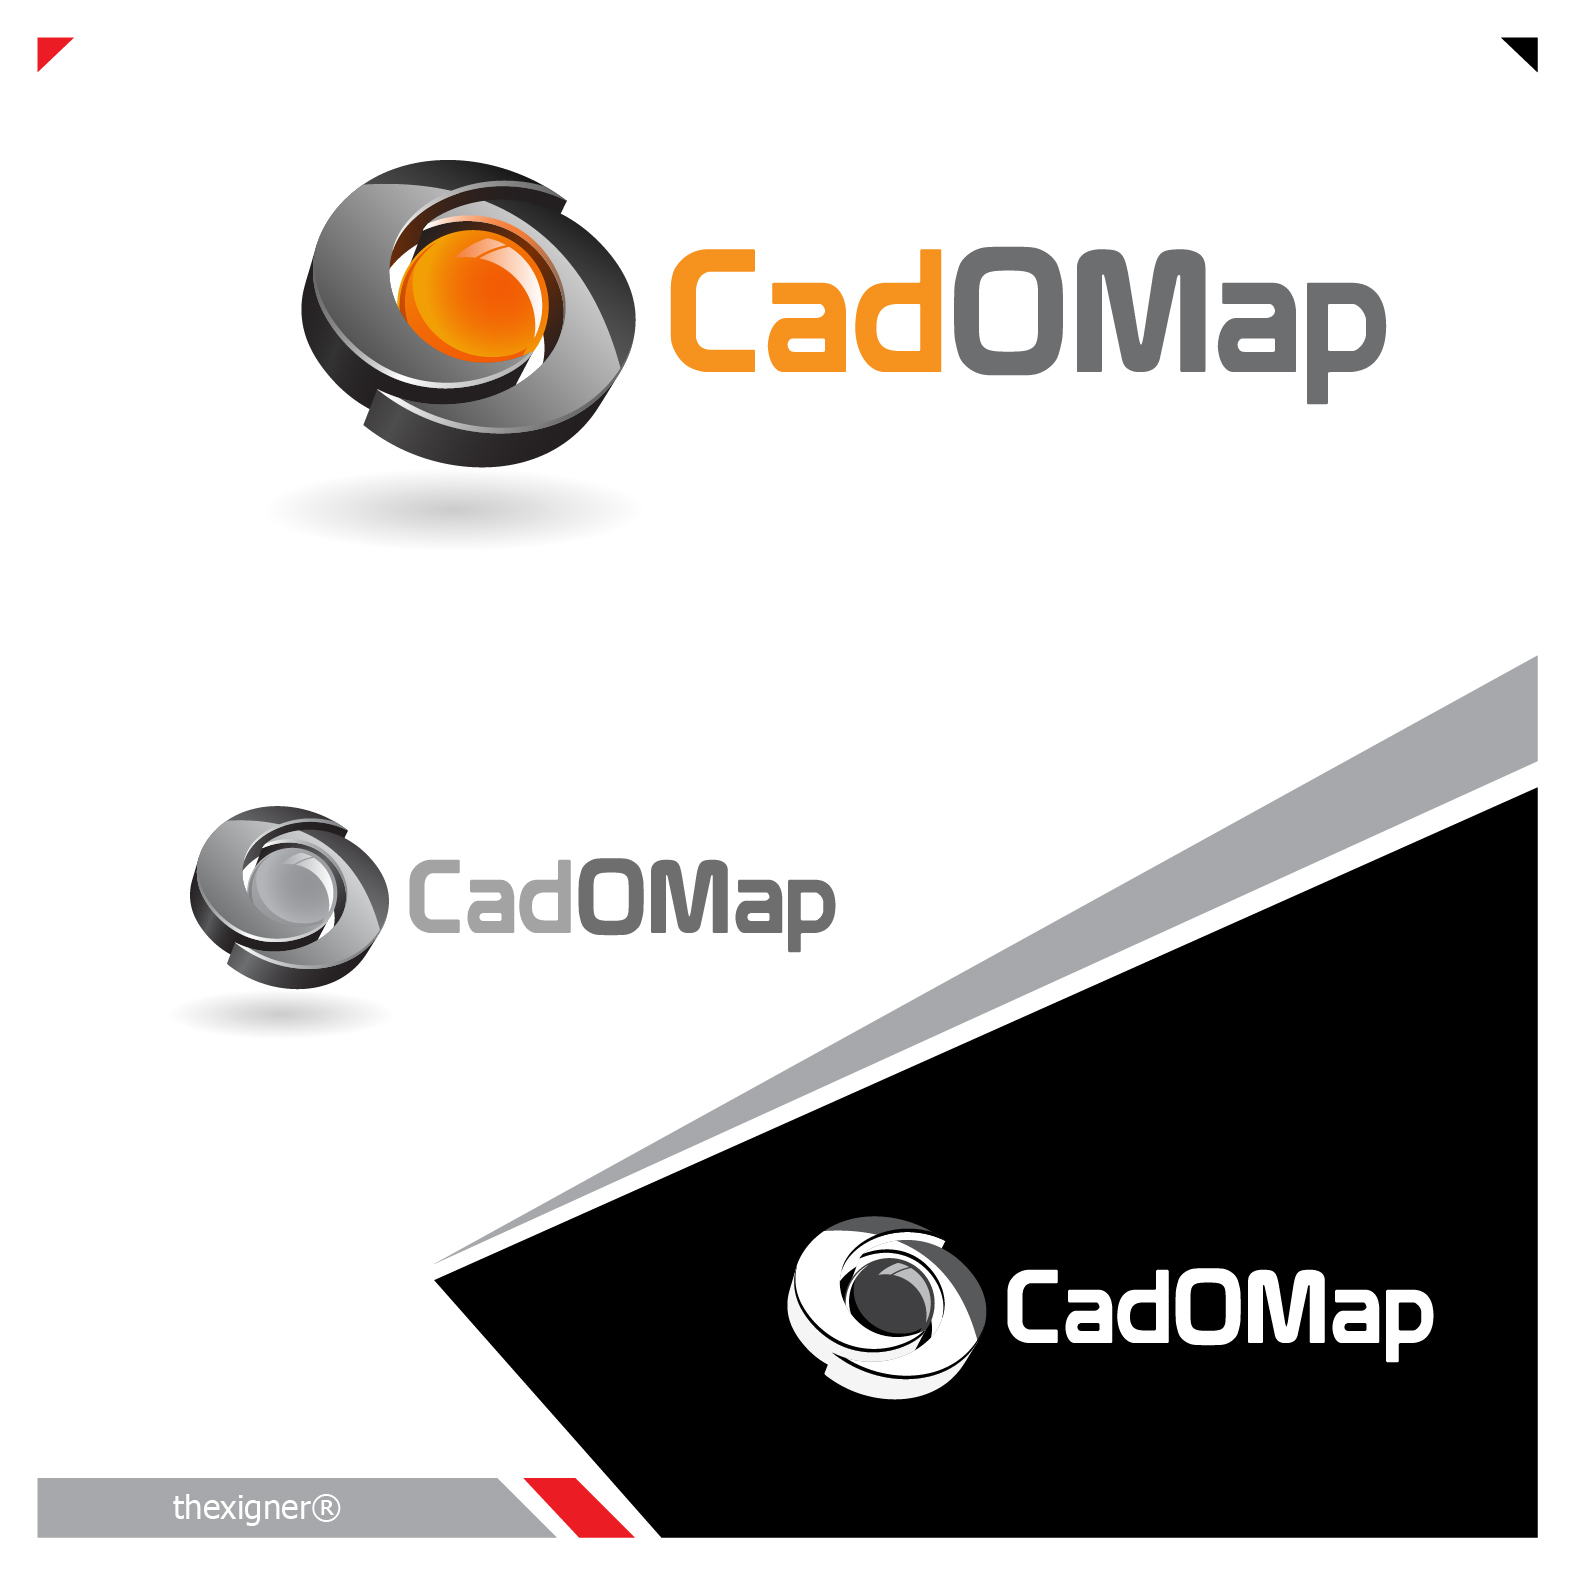 Logo Design by lagalag - Entry No. 154 in the Logo Design Contest Captivating Logo Design for CadOMap software product.